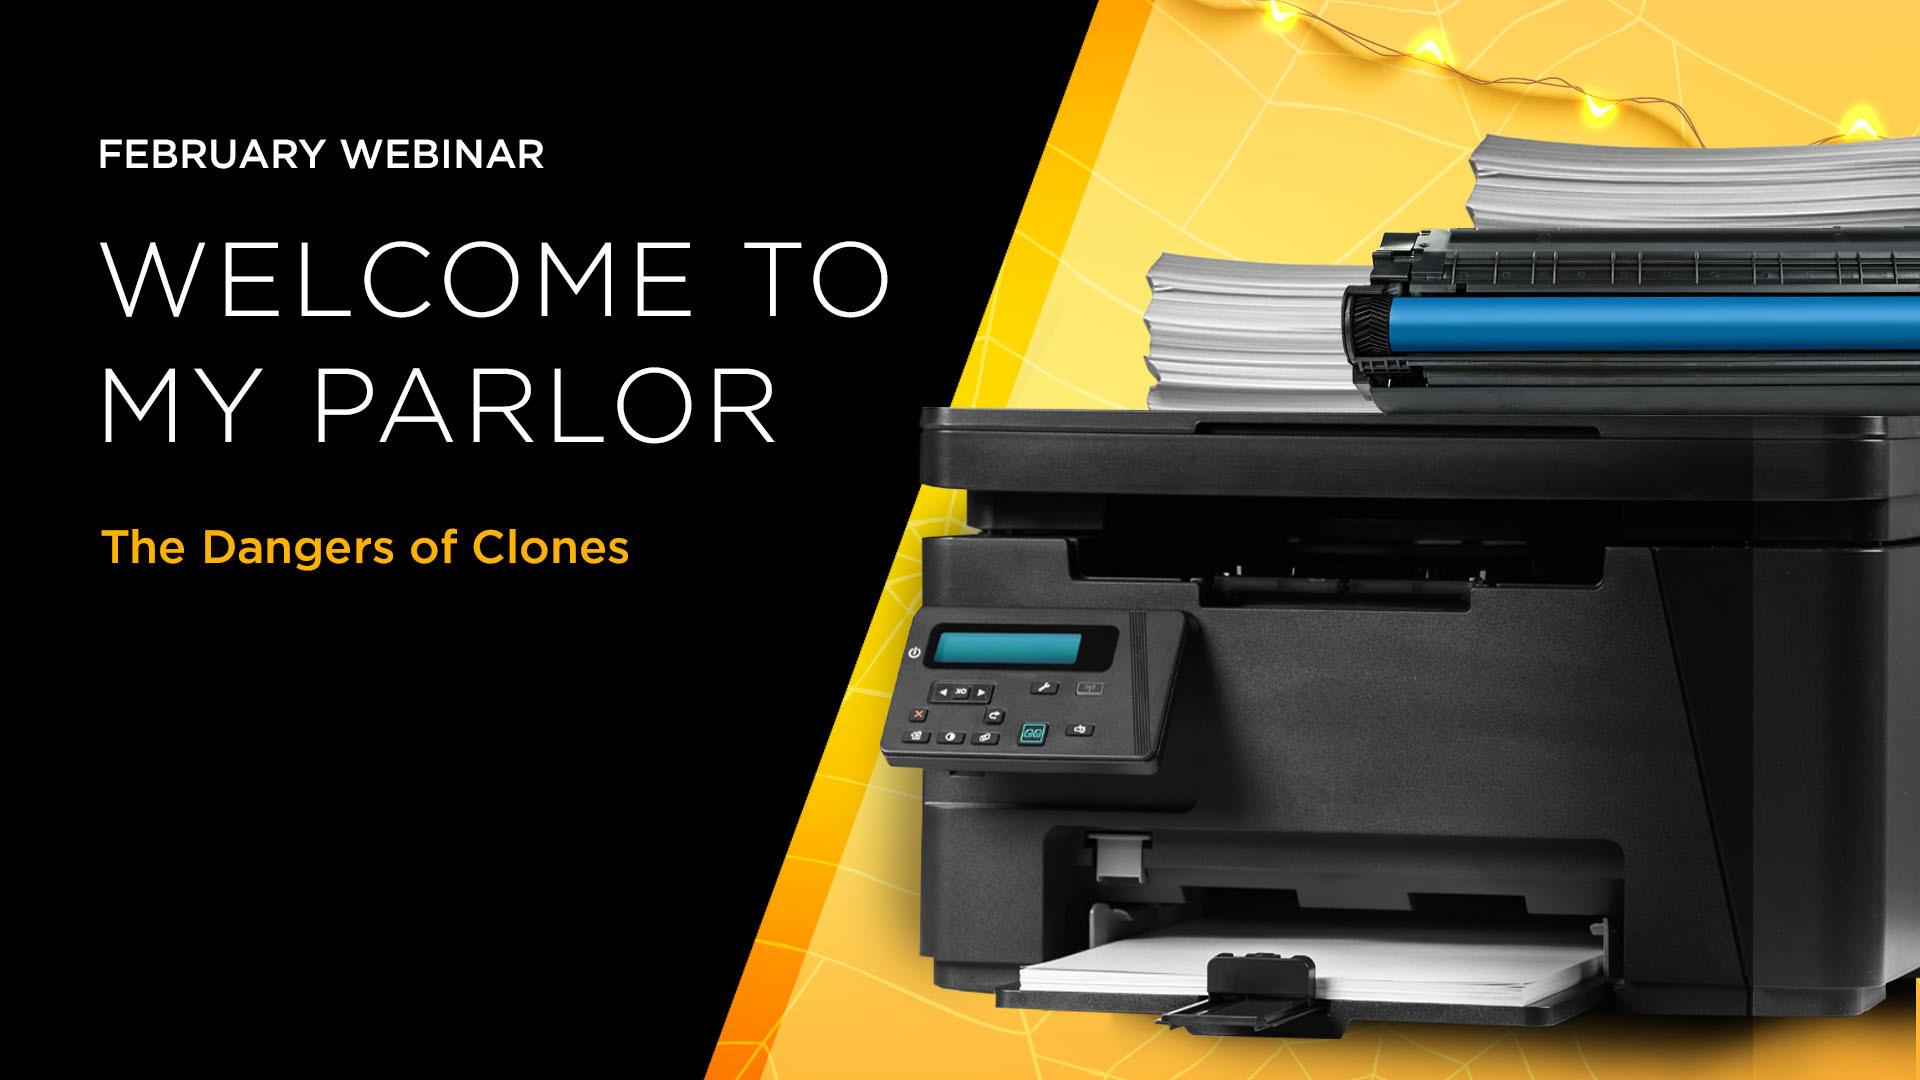 Welcome to My Parlor Webinar